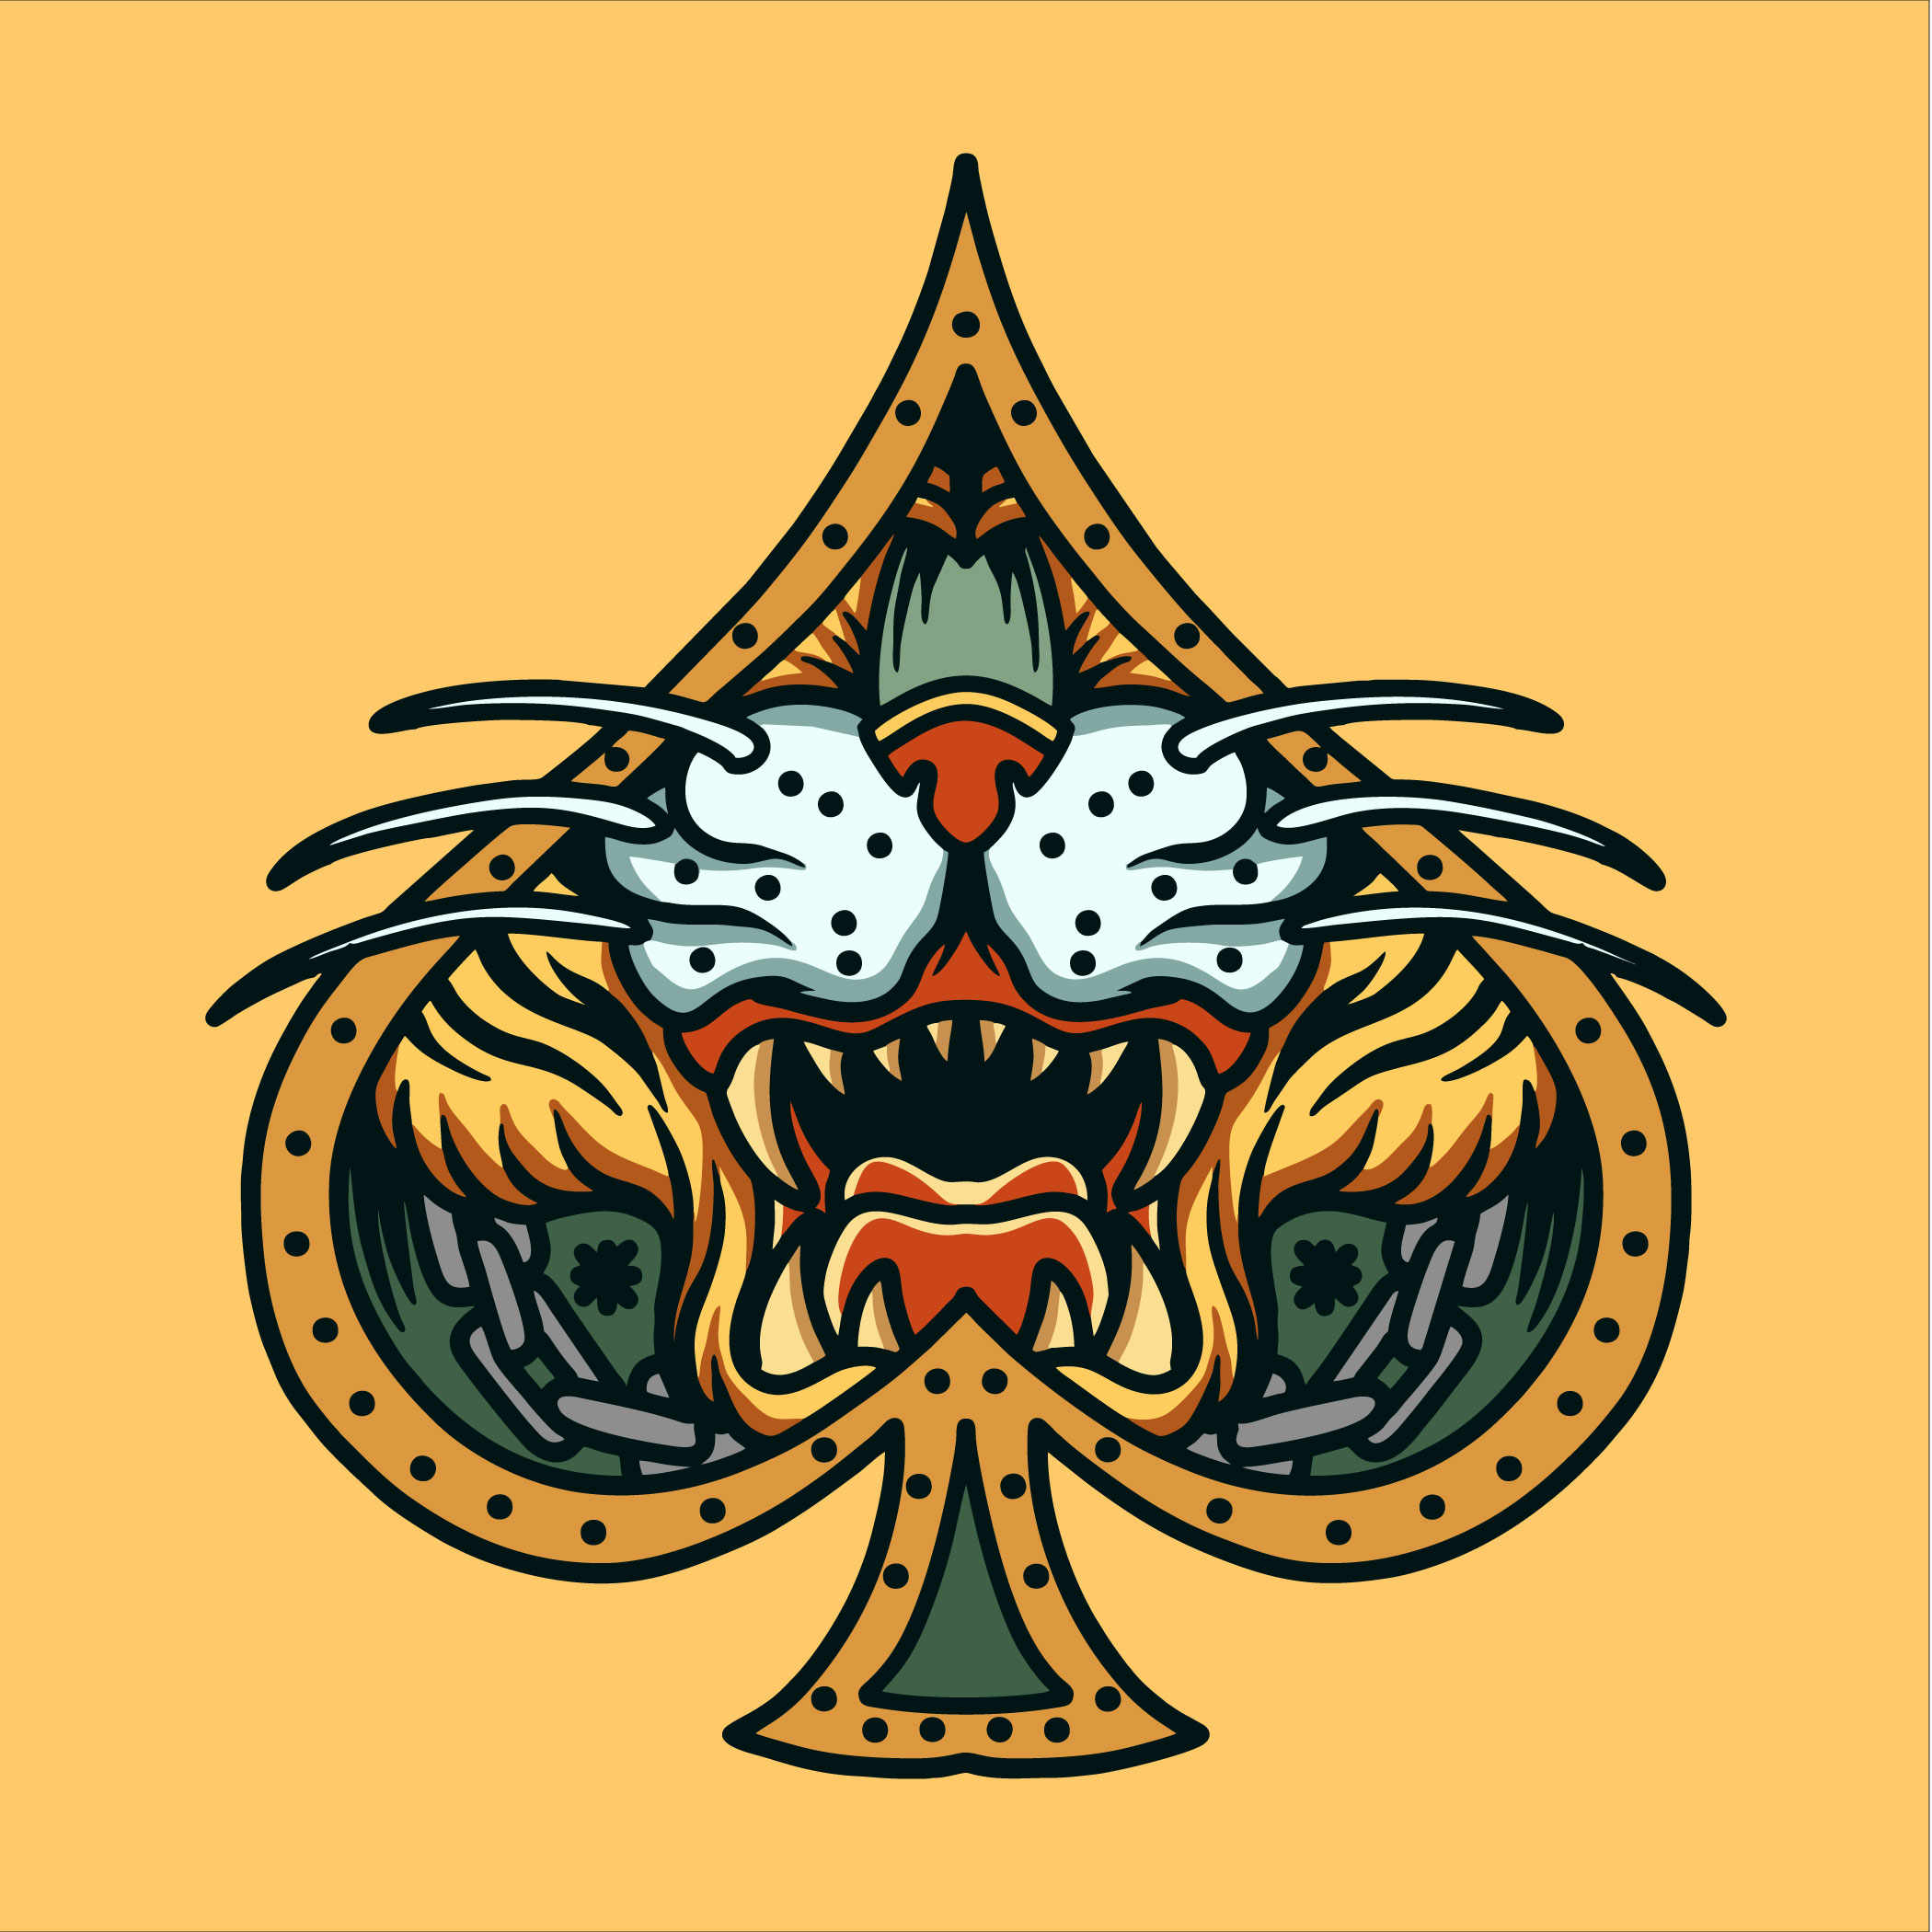 Tiger face in spade frame tattoo vector